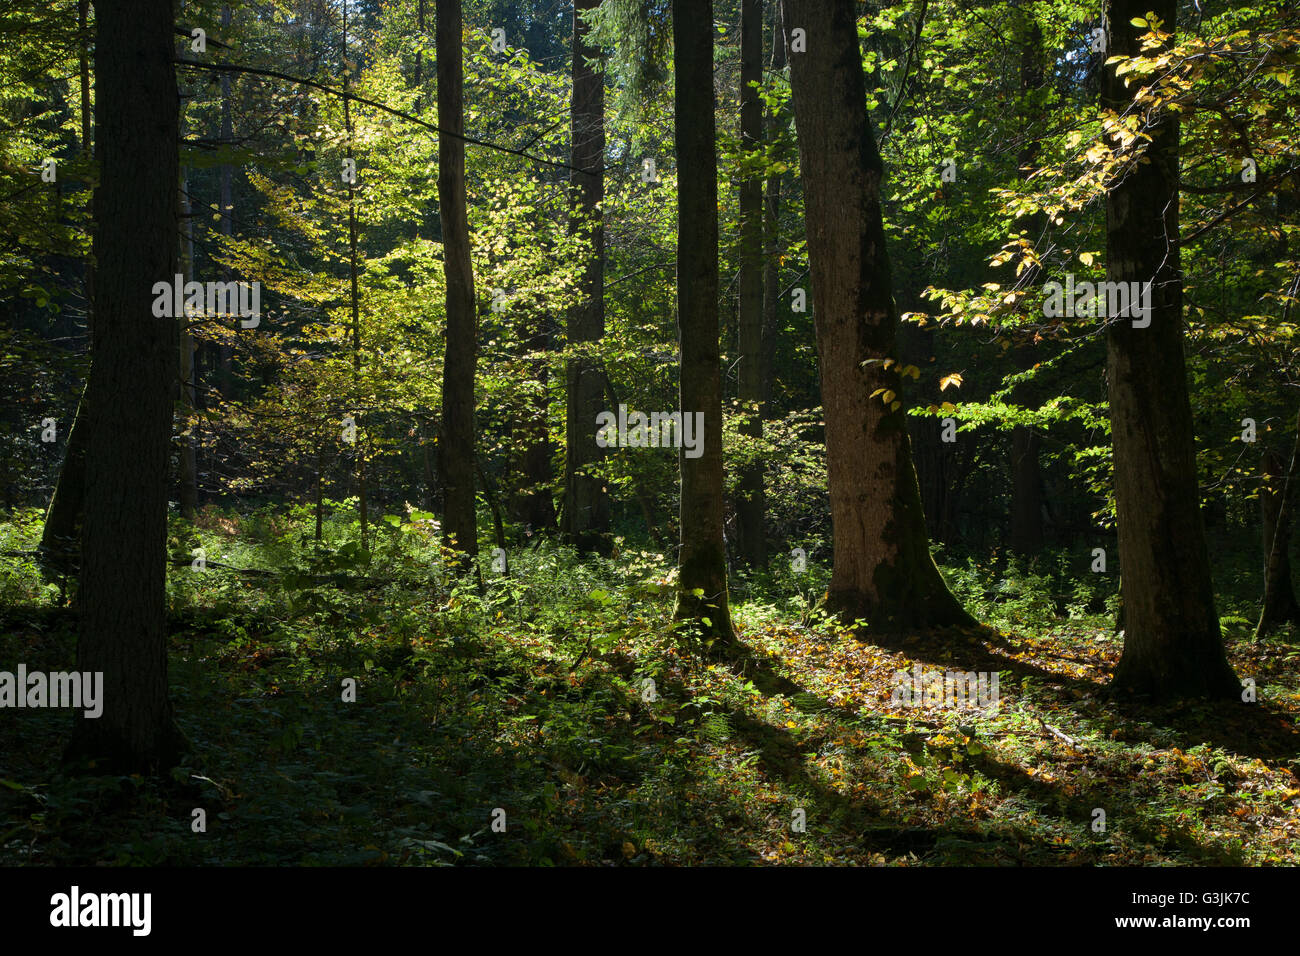 Shady deciduous stand of Bialowieza Forest in summertime morning,Bialowieza Forest,Poland,Europe - Stock Image